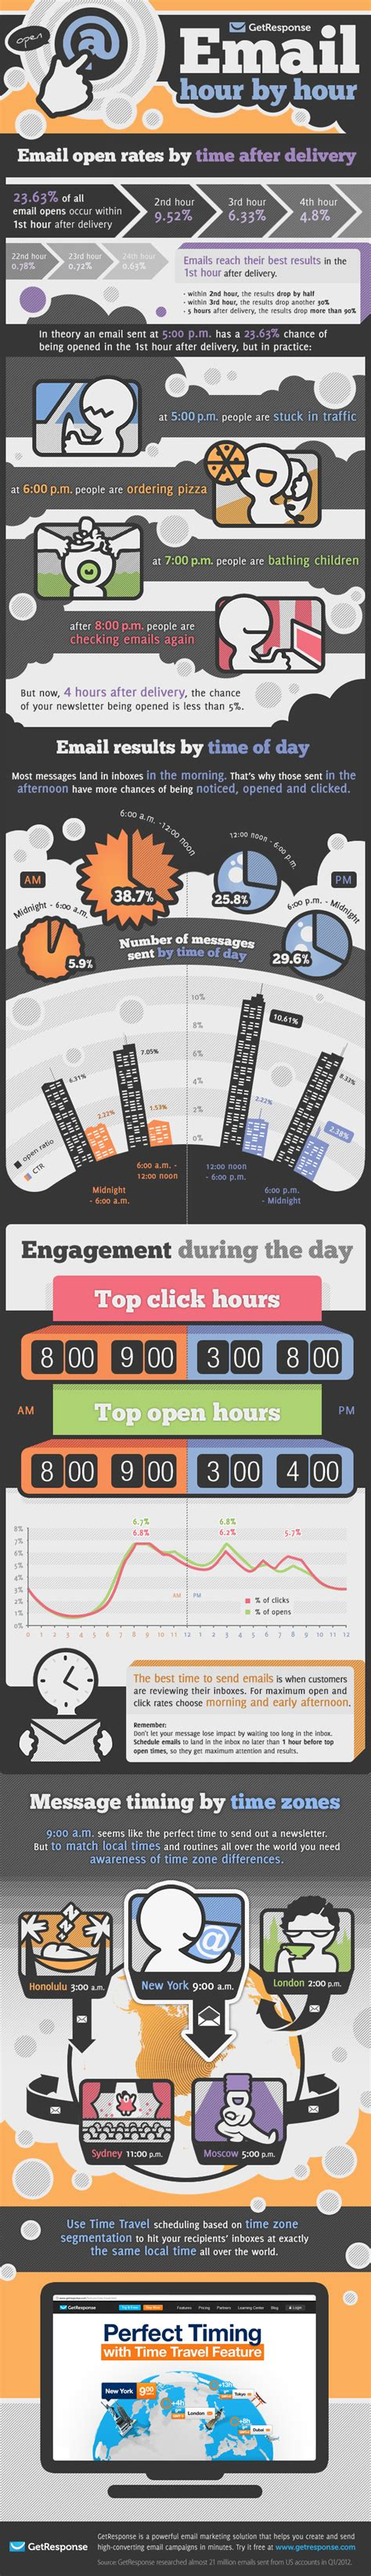 infographic the best time to send email